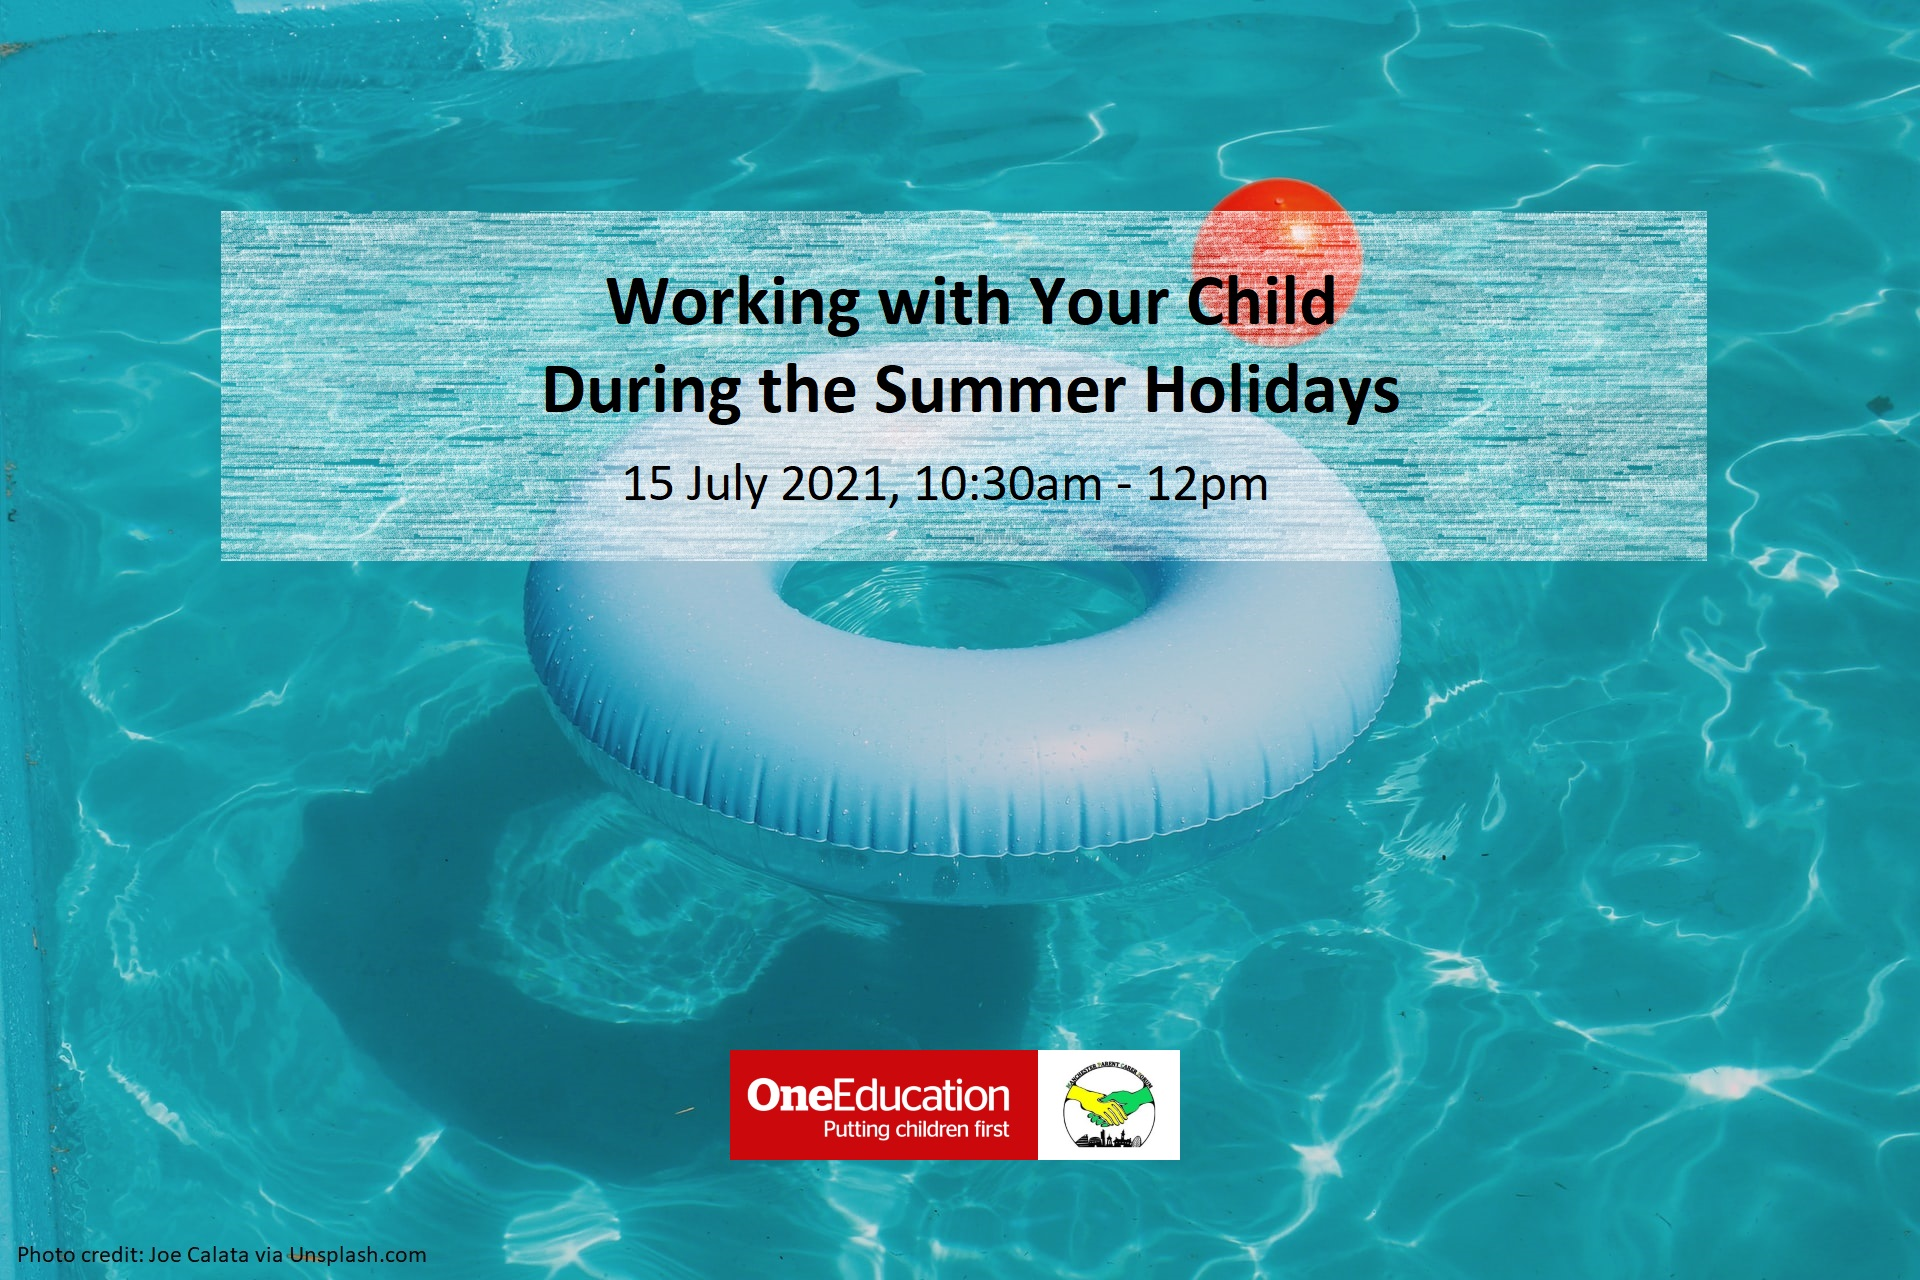 The background shows a swimming pool with a blue donut inflatable and a red ball floating on it. The foreground shows the title and date of this event at the top, and One Education's and MPCF's logos at the bottom. | Photo credit: Joe Calata via Unsplash.com